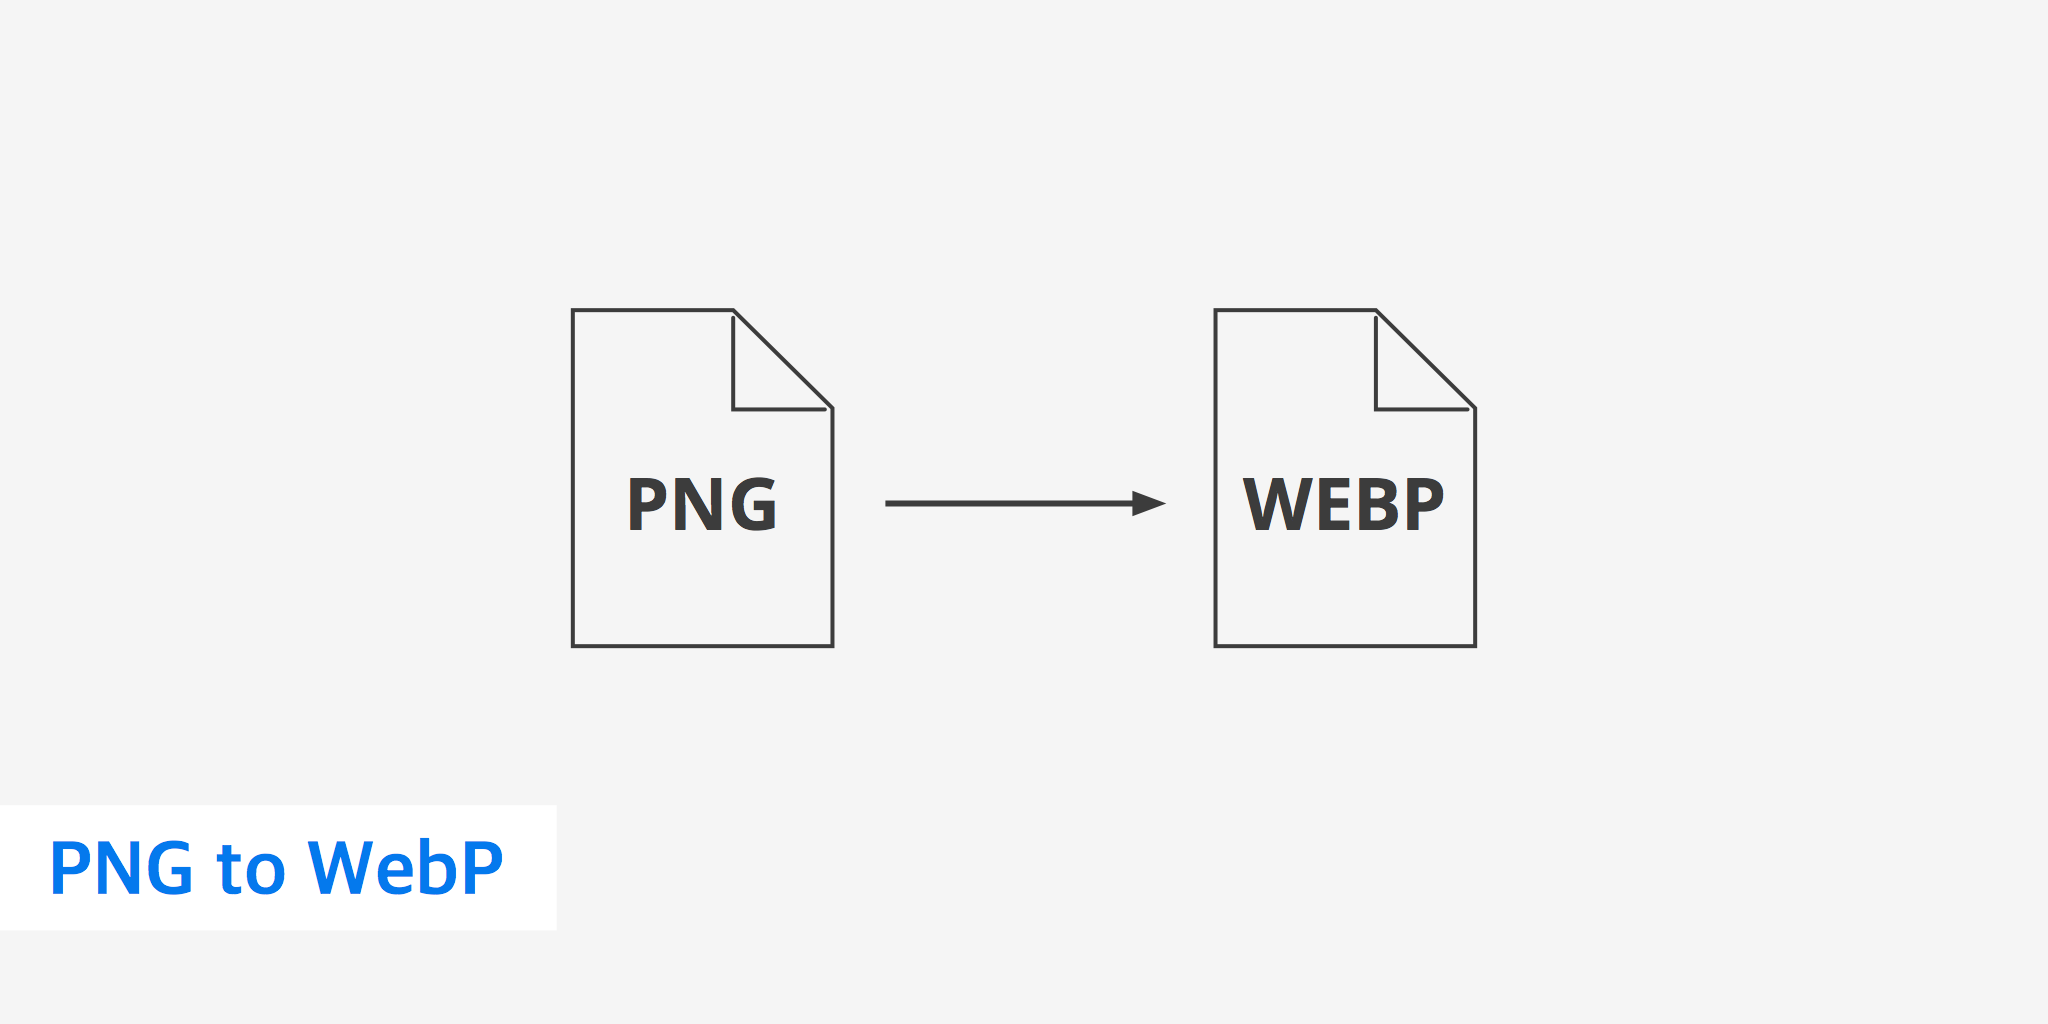 PNG to WebP - Comparing Compression Sizes